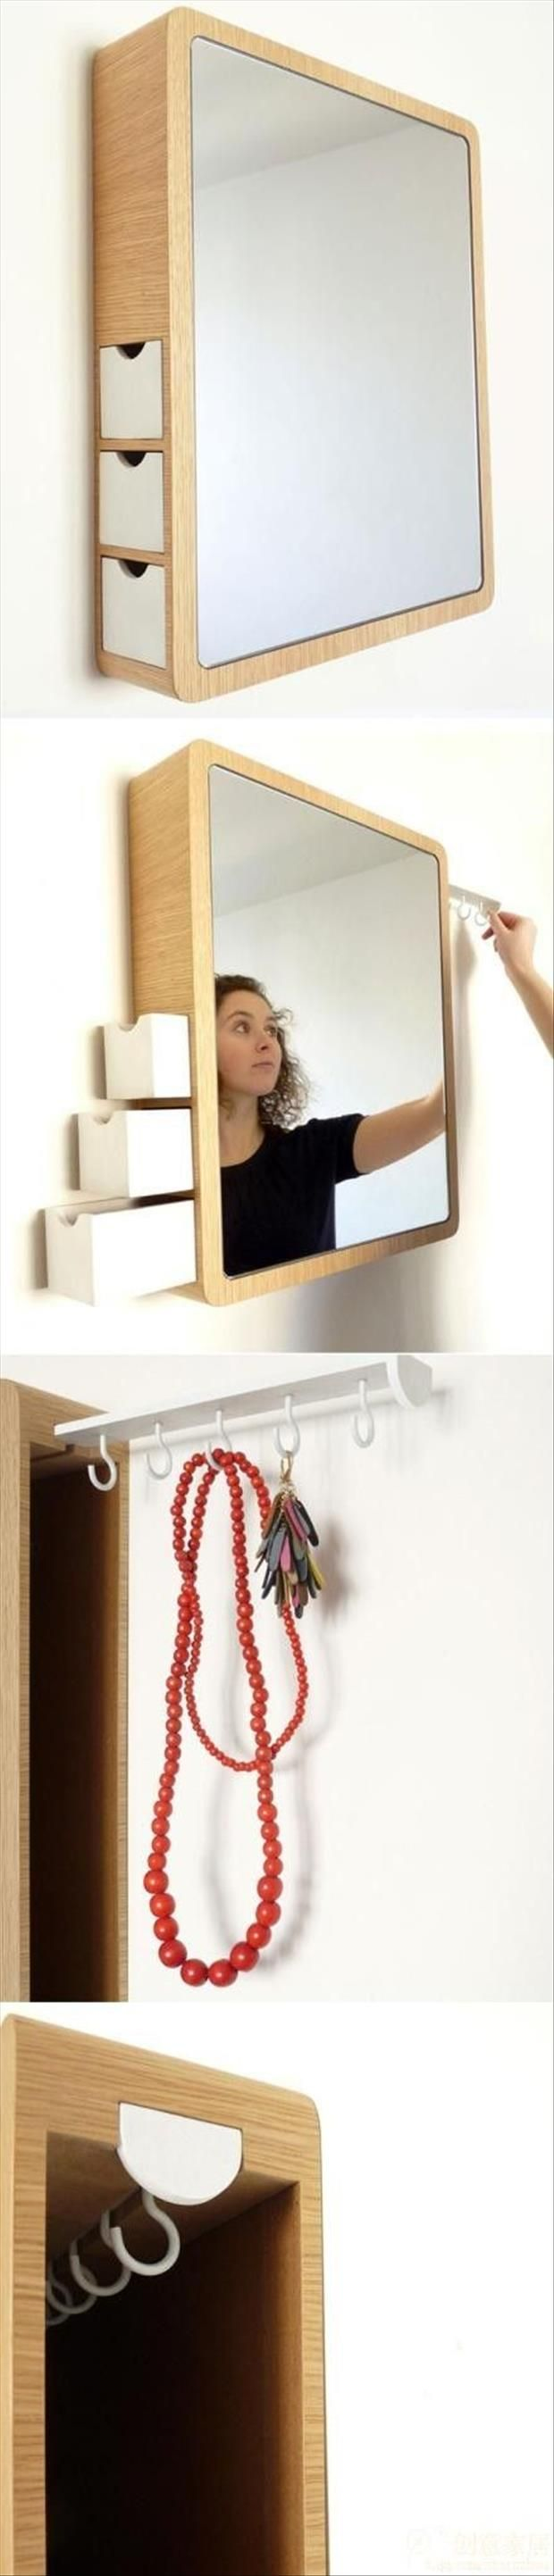 bathroom mirror concepts